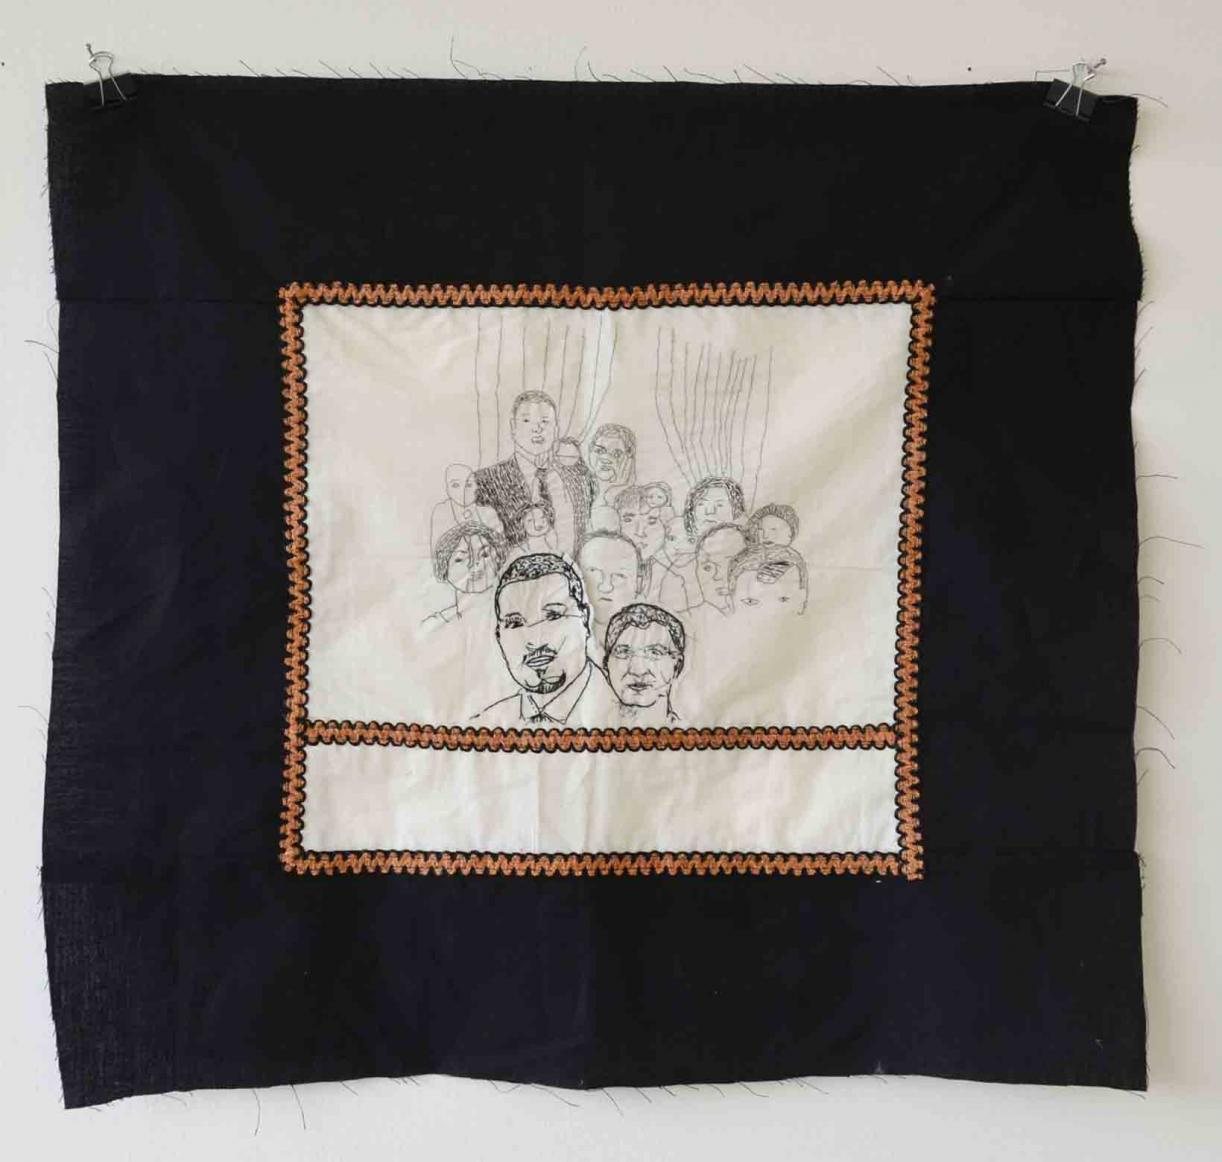 My speciality was to make a peasants' haircut, but they obliged me work till midnight often, 2015-2017, hand and machine stitched embroidery, 68 x 72 cm